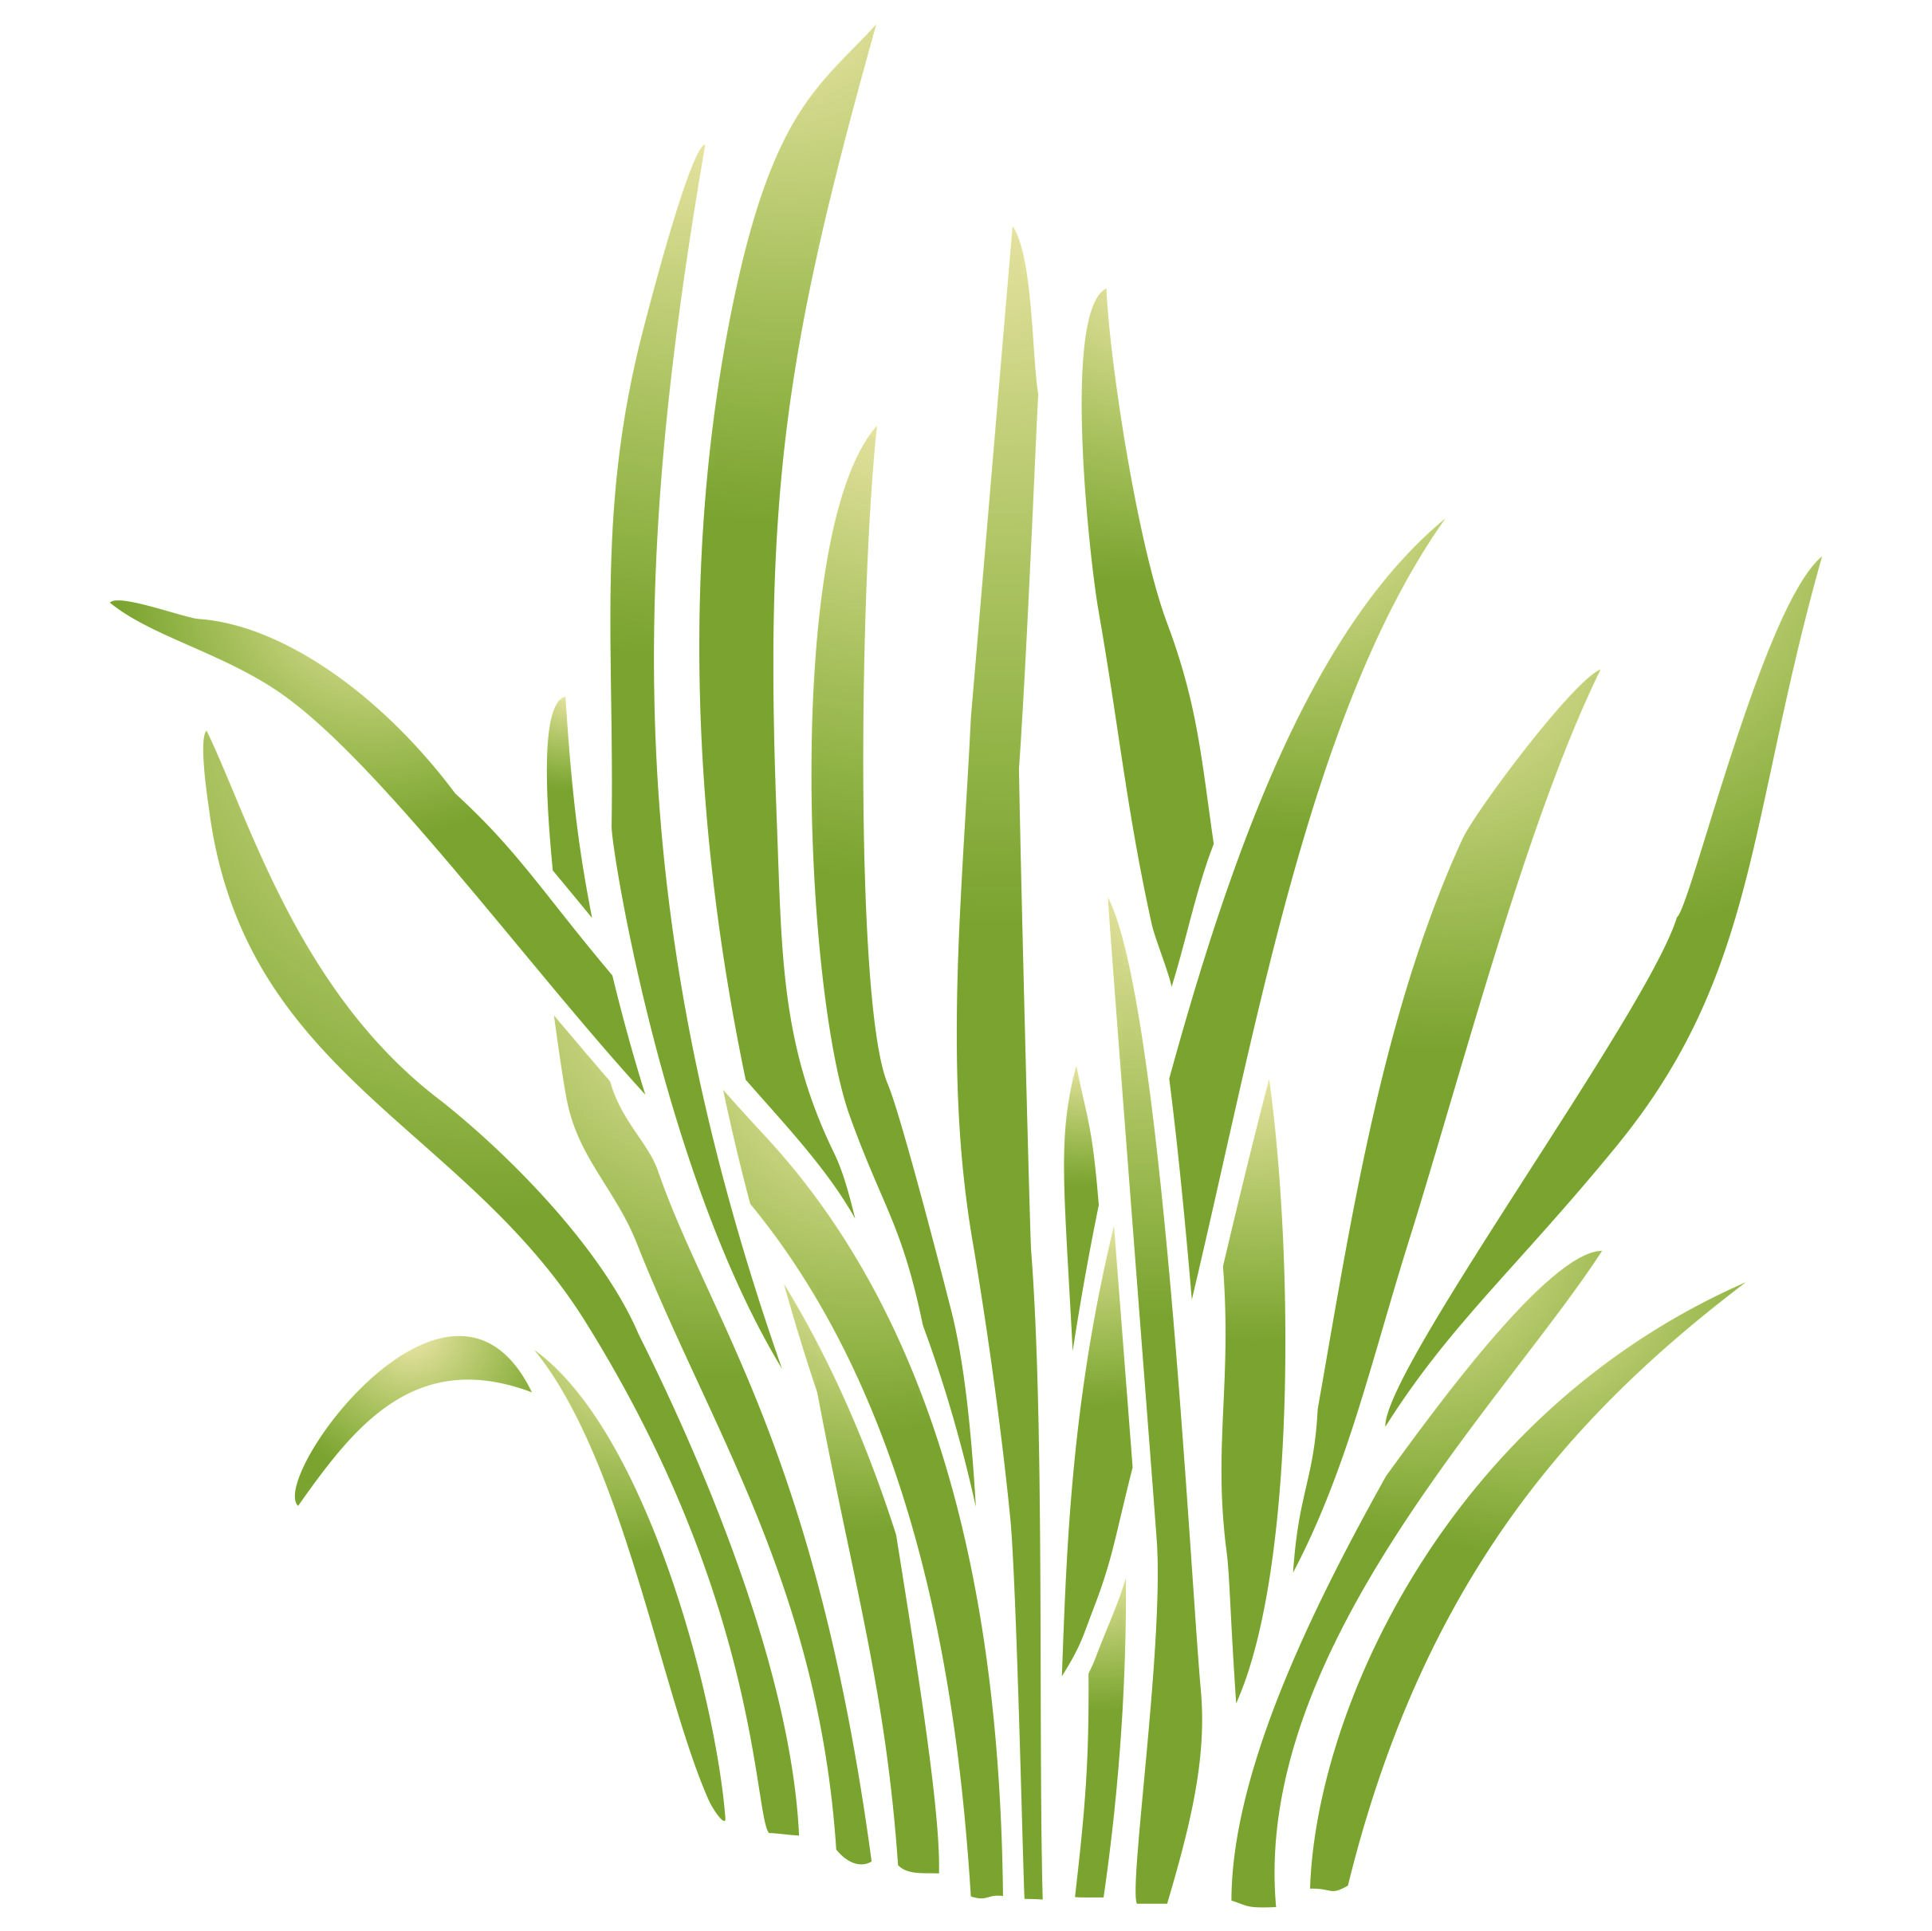 Grass Stencil - (size 10''w x 11.5''h) Reusable Wall Stencils for Painting - Best Quality Nursery Stencils for Baby Room - Use on Walls, Floors, Fabrics, Glass, Wood, Terracotta, and More...... by Stencils for Walls